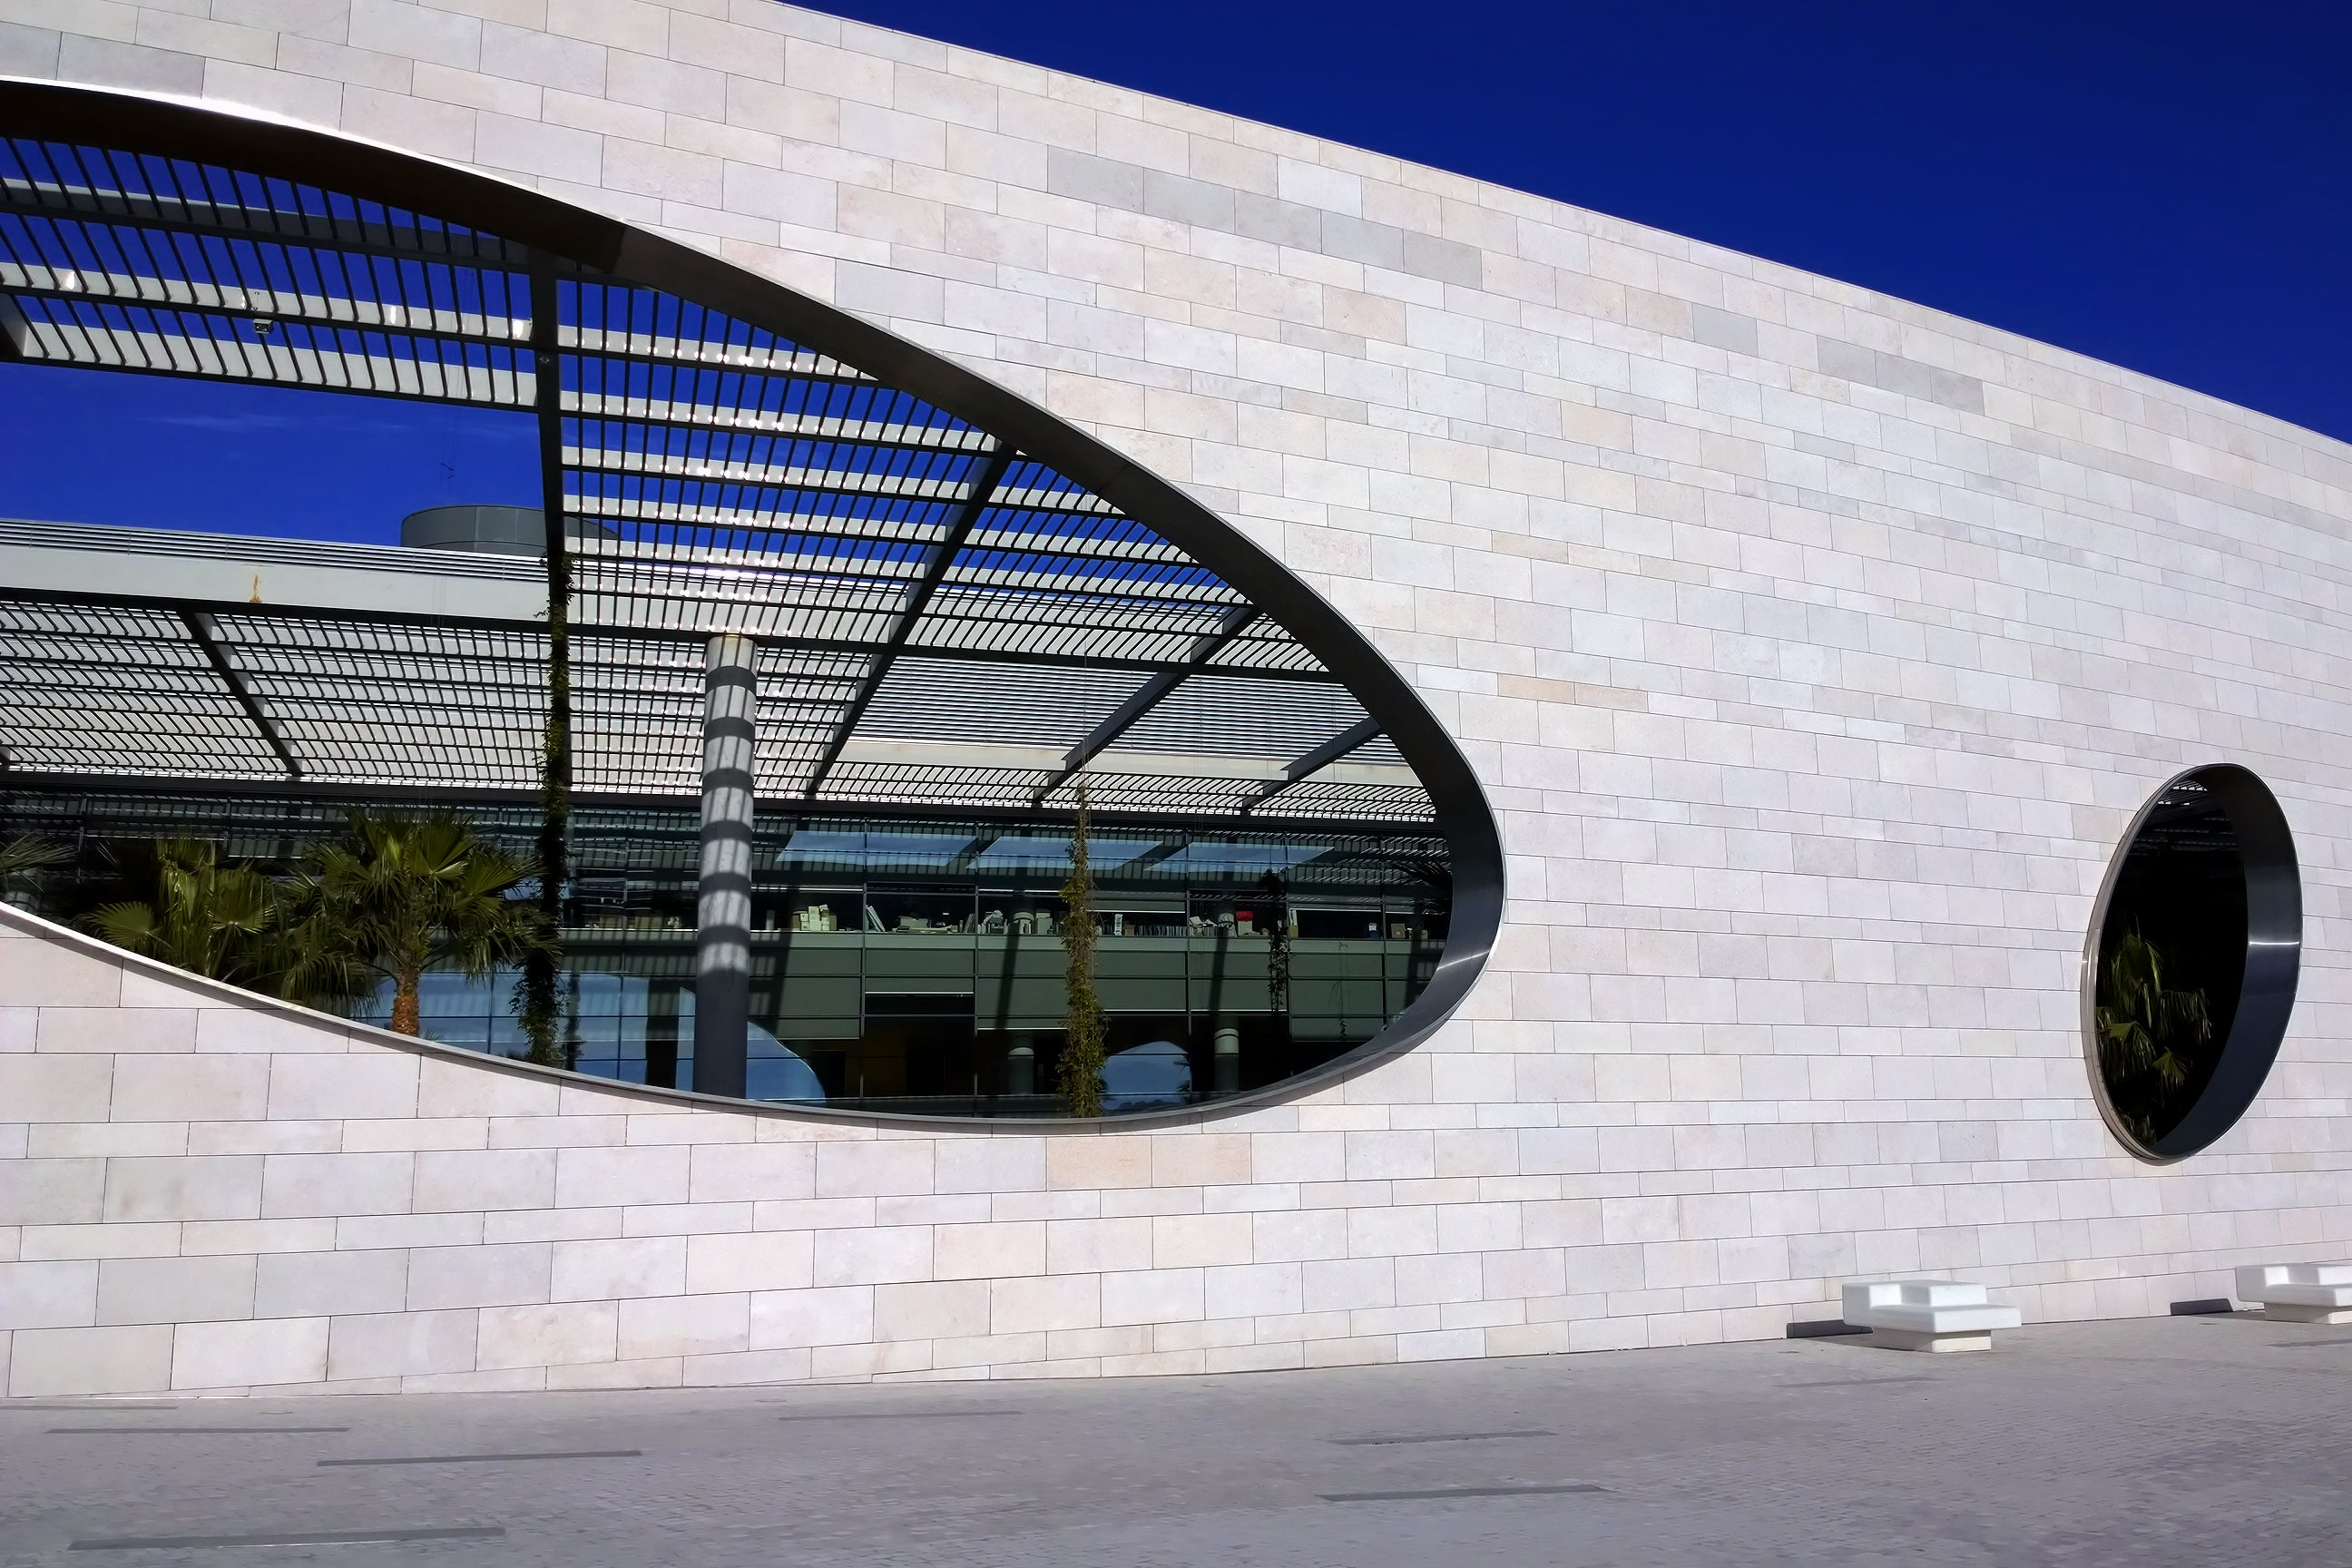 Champalimaud Center in Lisboa by Charles Correa